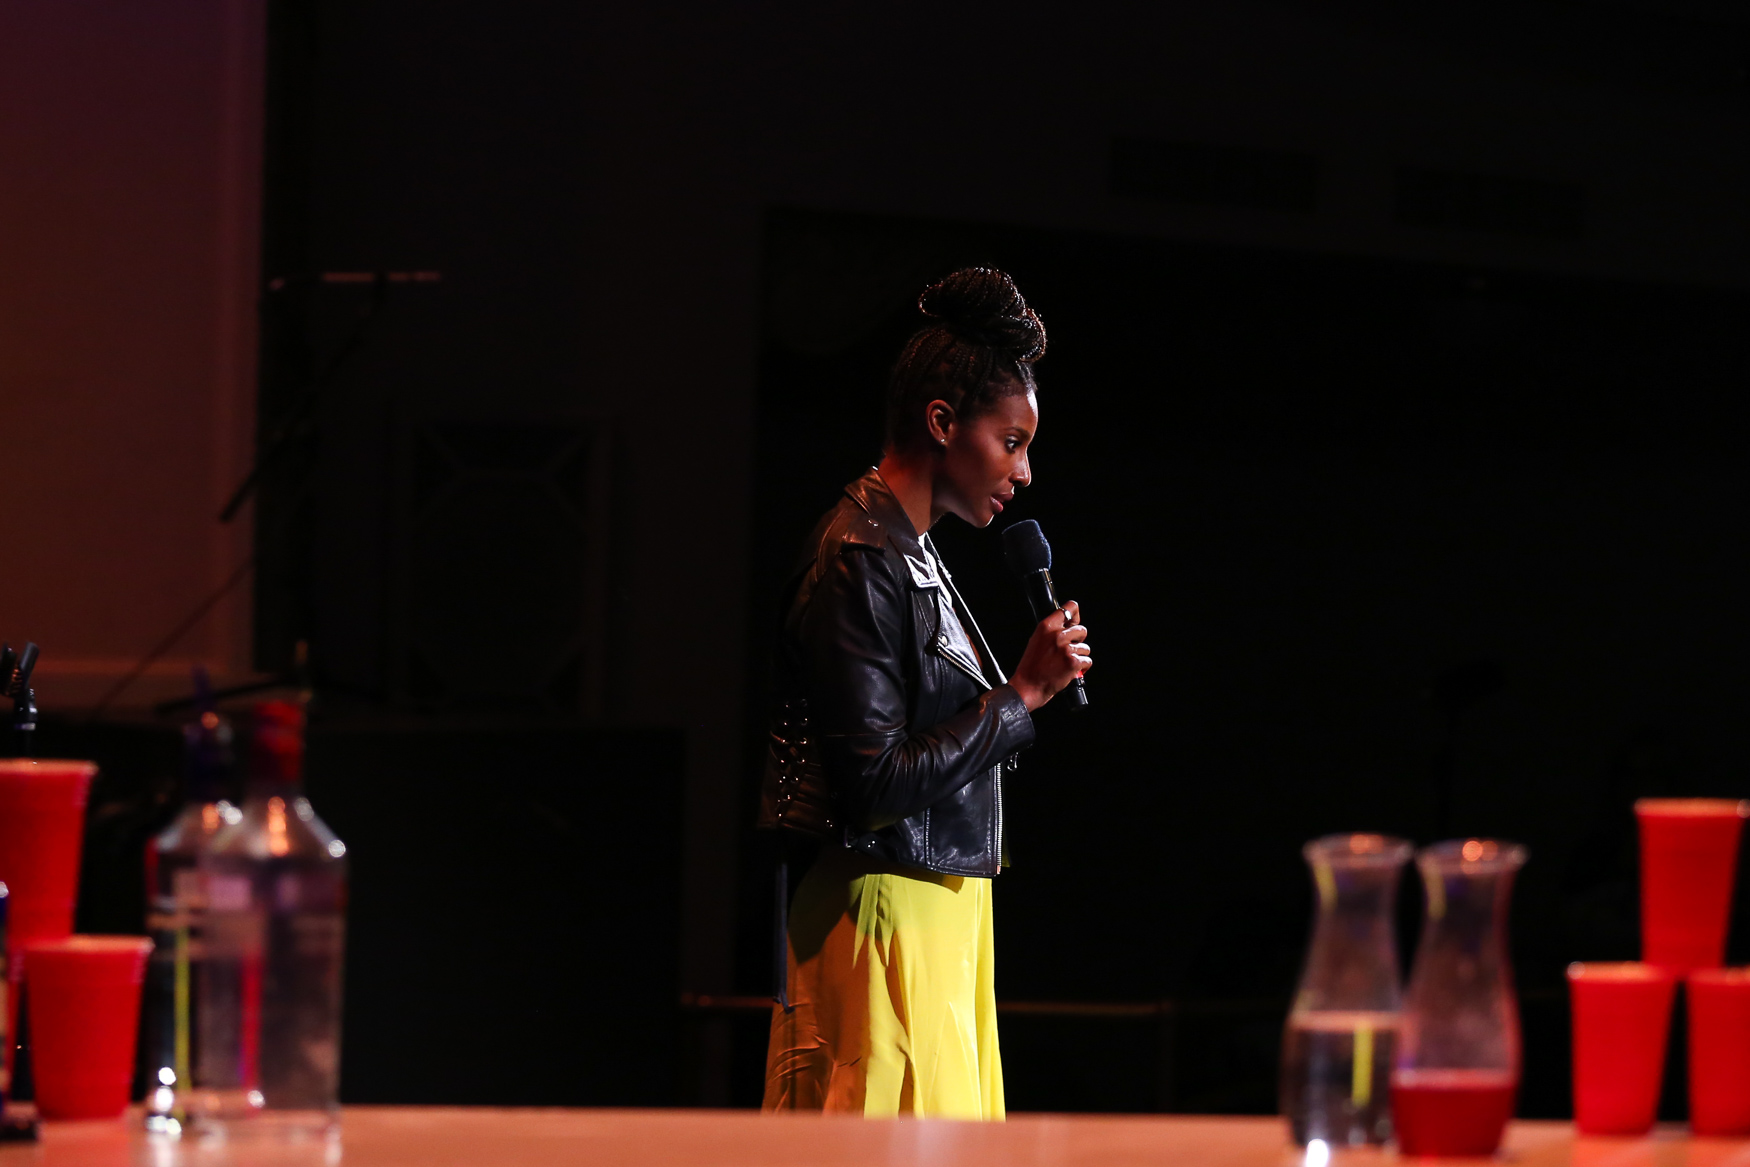 Comedienne{ }{ }Zainab Johnson{ }performed at The Bentzen Ball on October 28. (Amanda Andrade-Rhoades/DC Refined)